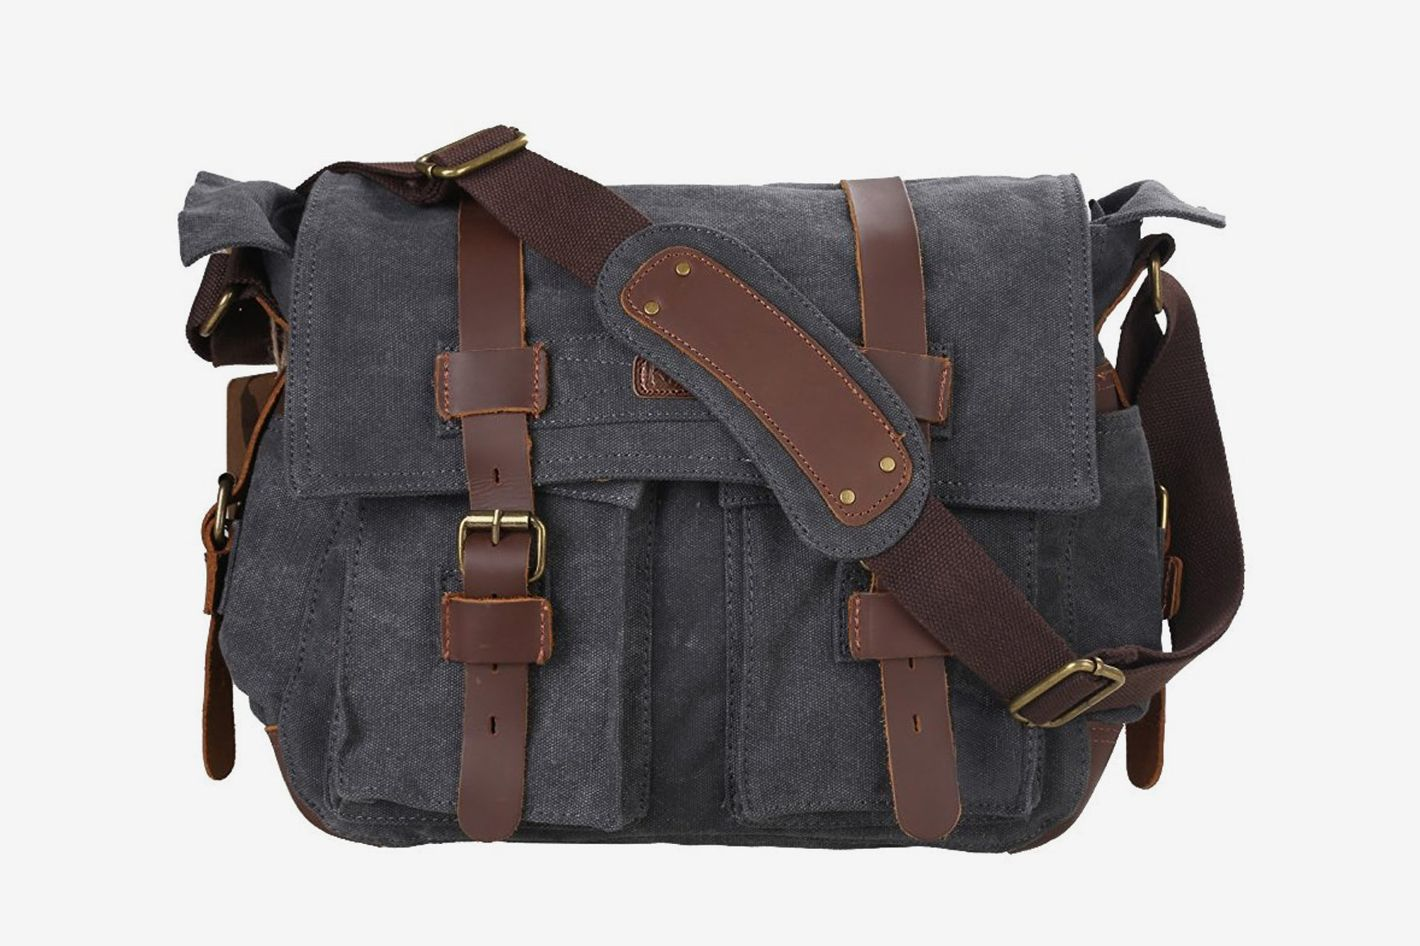 080a10e4ef Kattee Leather Canvas Camera Bag Vintage DSLR SLR Messenger Shoulder Bag at  Amazon. Buy · Modoker Vintage Laptop Backpack ...